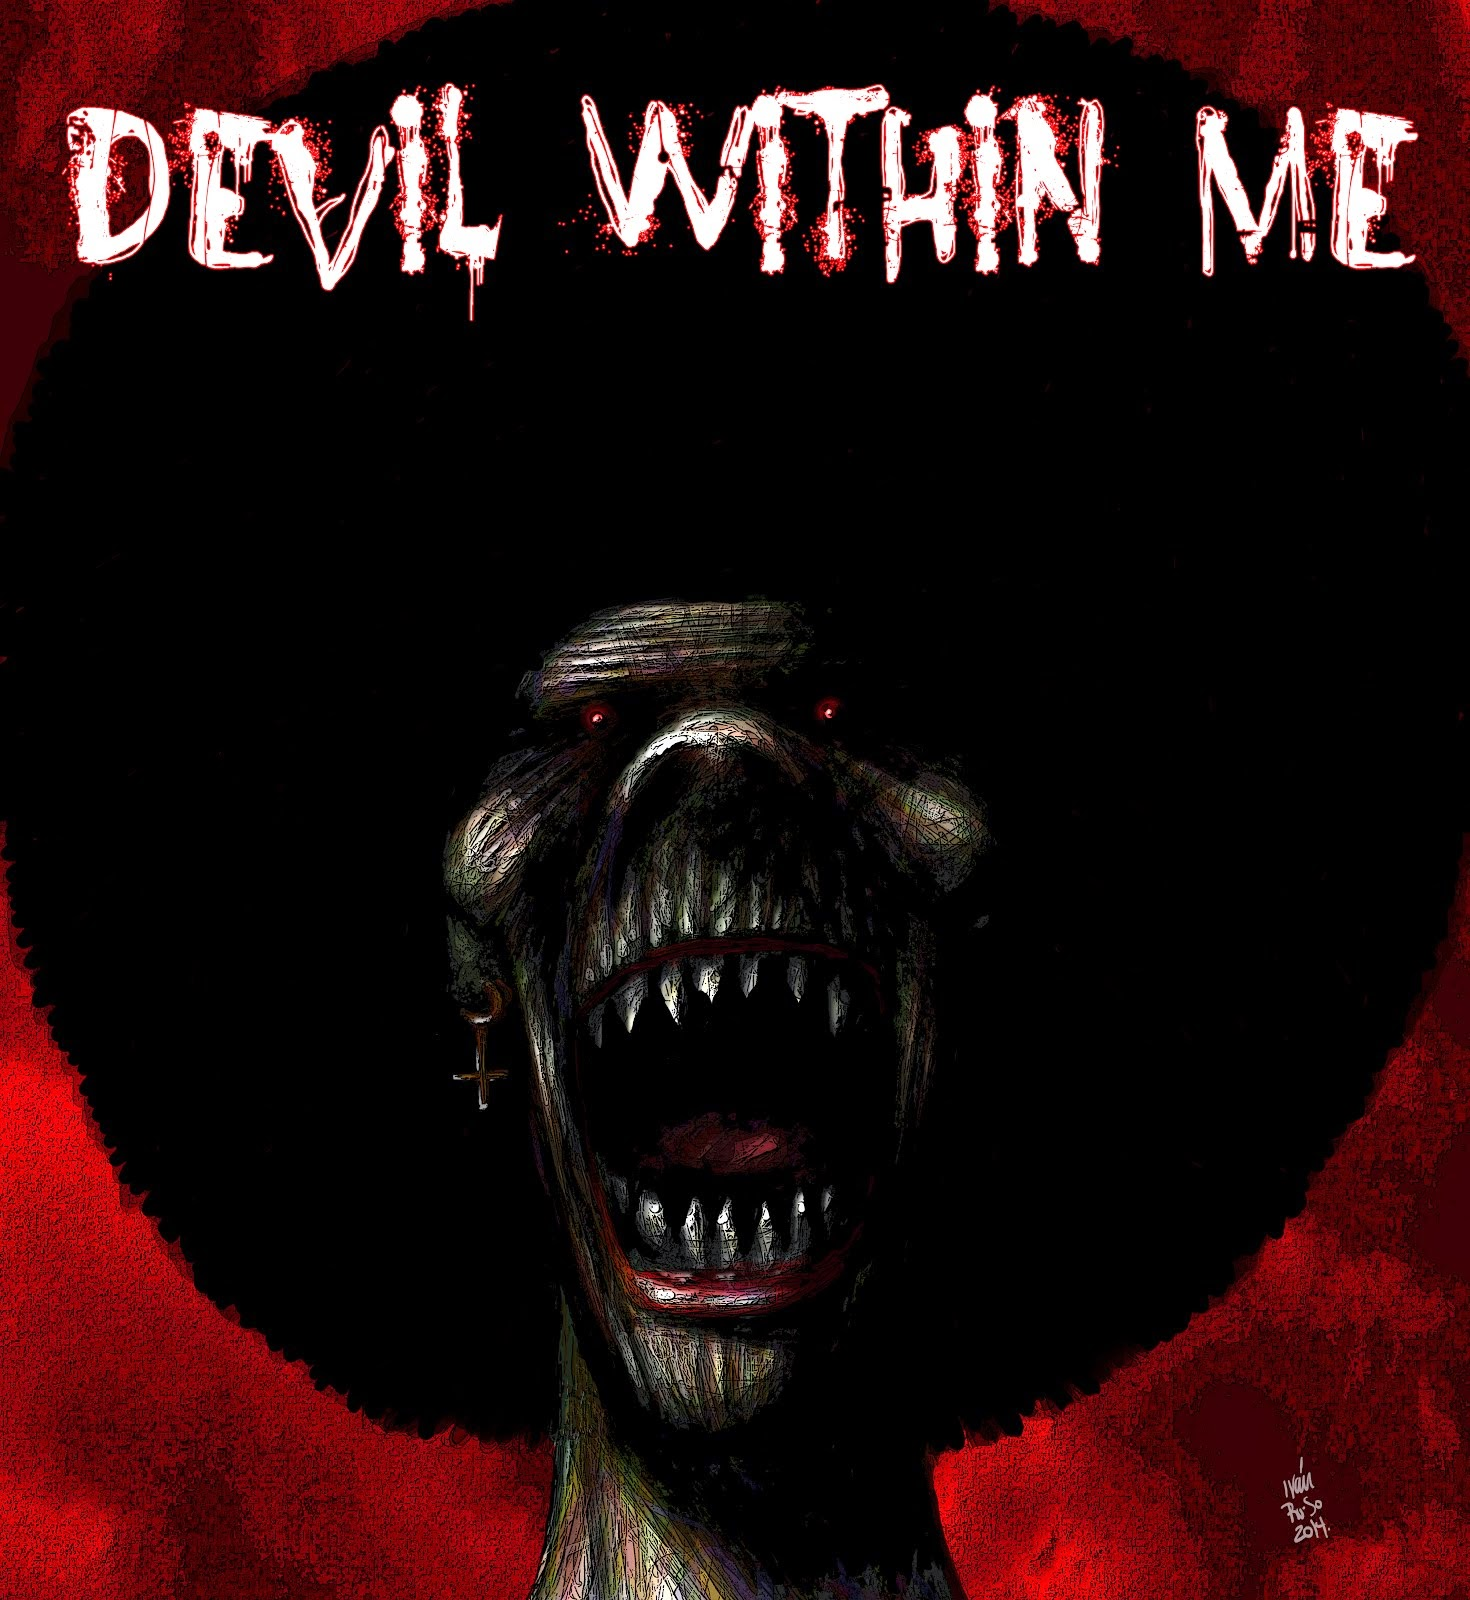 Devil within me